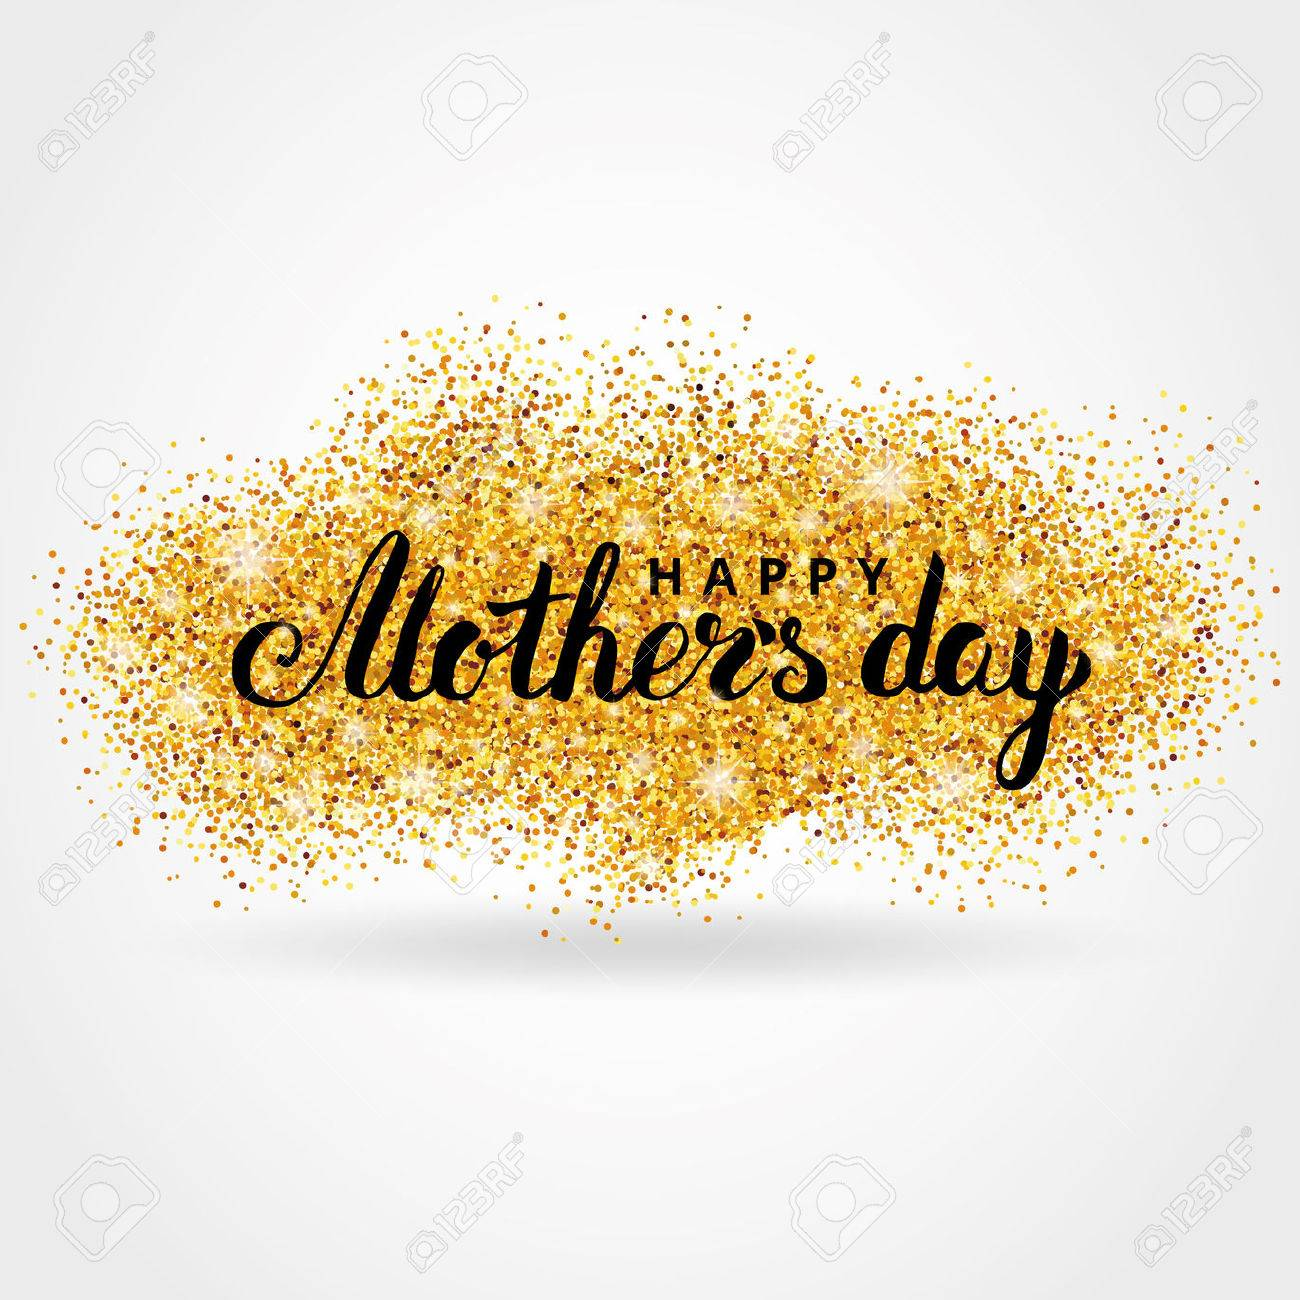 Mother day gold glitter background. Gold glitter. Gold background for greeting card, poster, sign, web header. Abstract sparkle background for mother day. Gold blur background. - 63414886